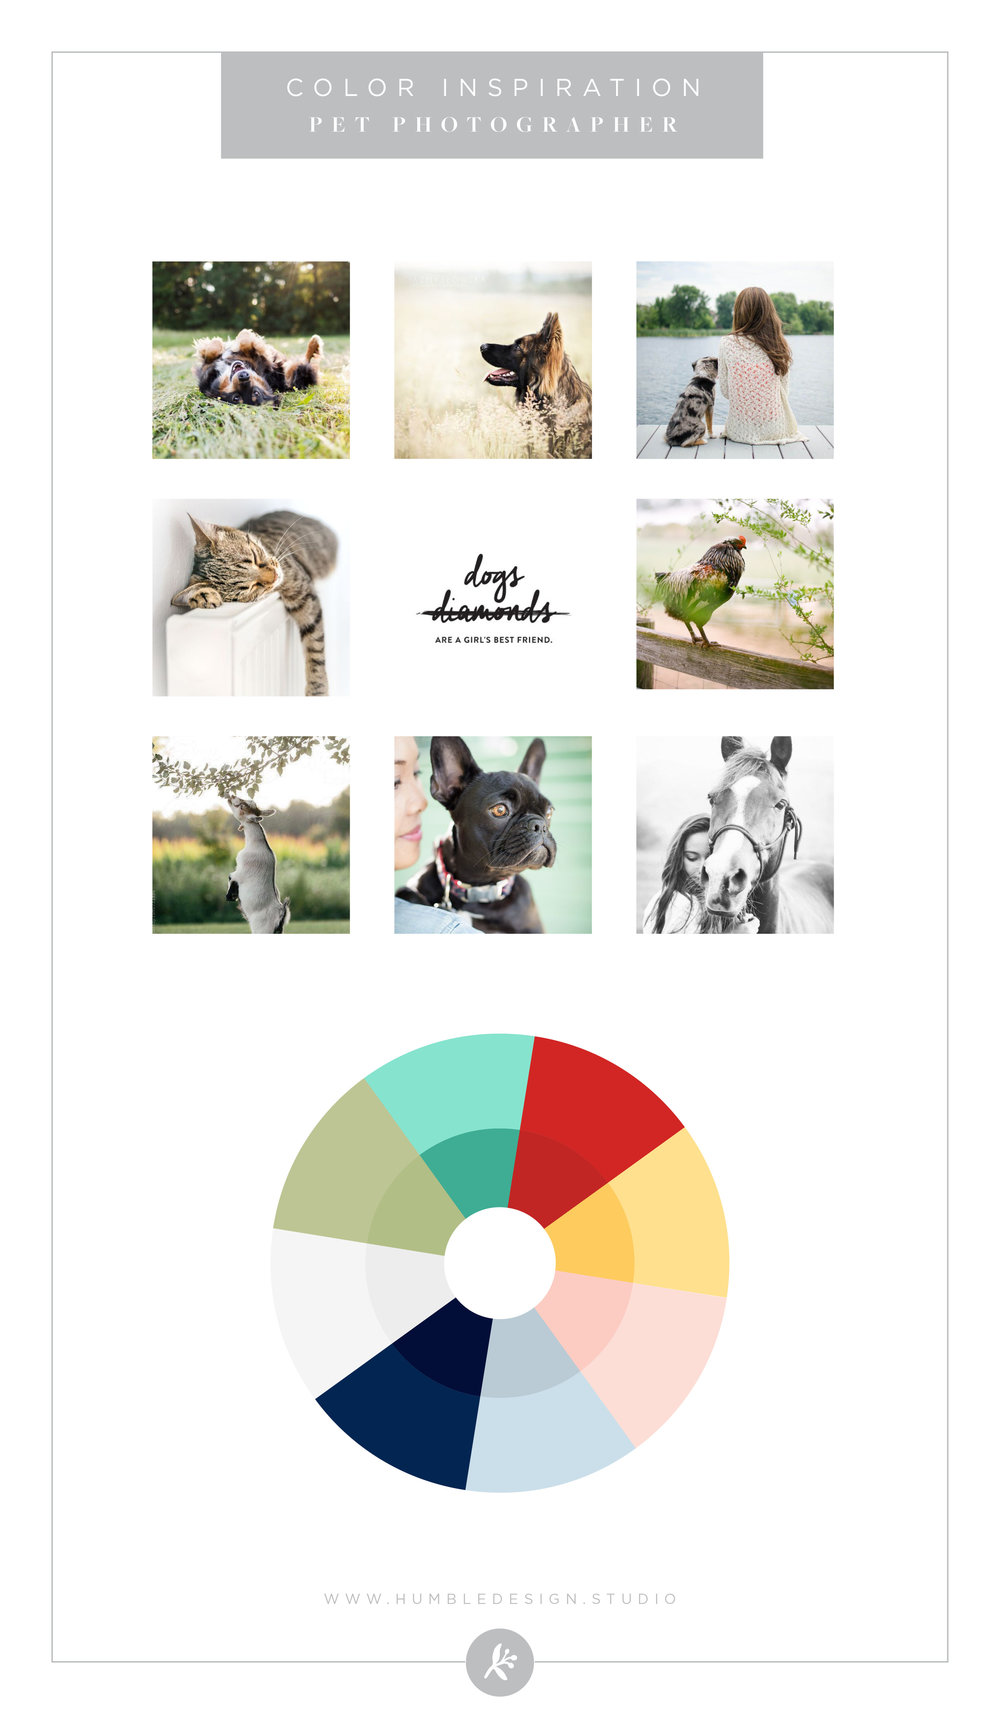 Pet Photographer Color Palette Inspiration